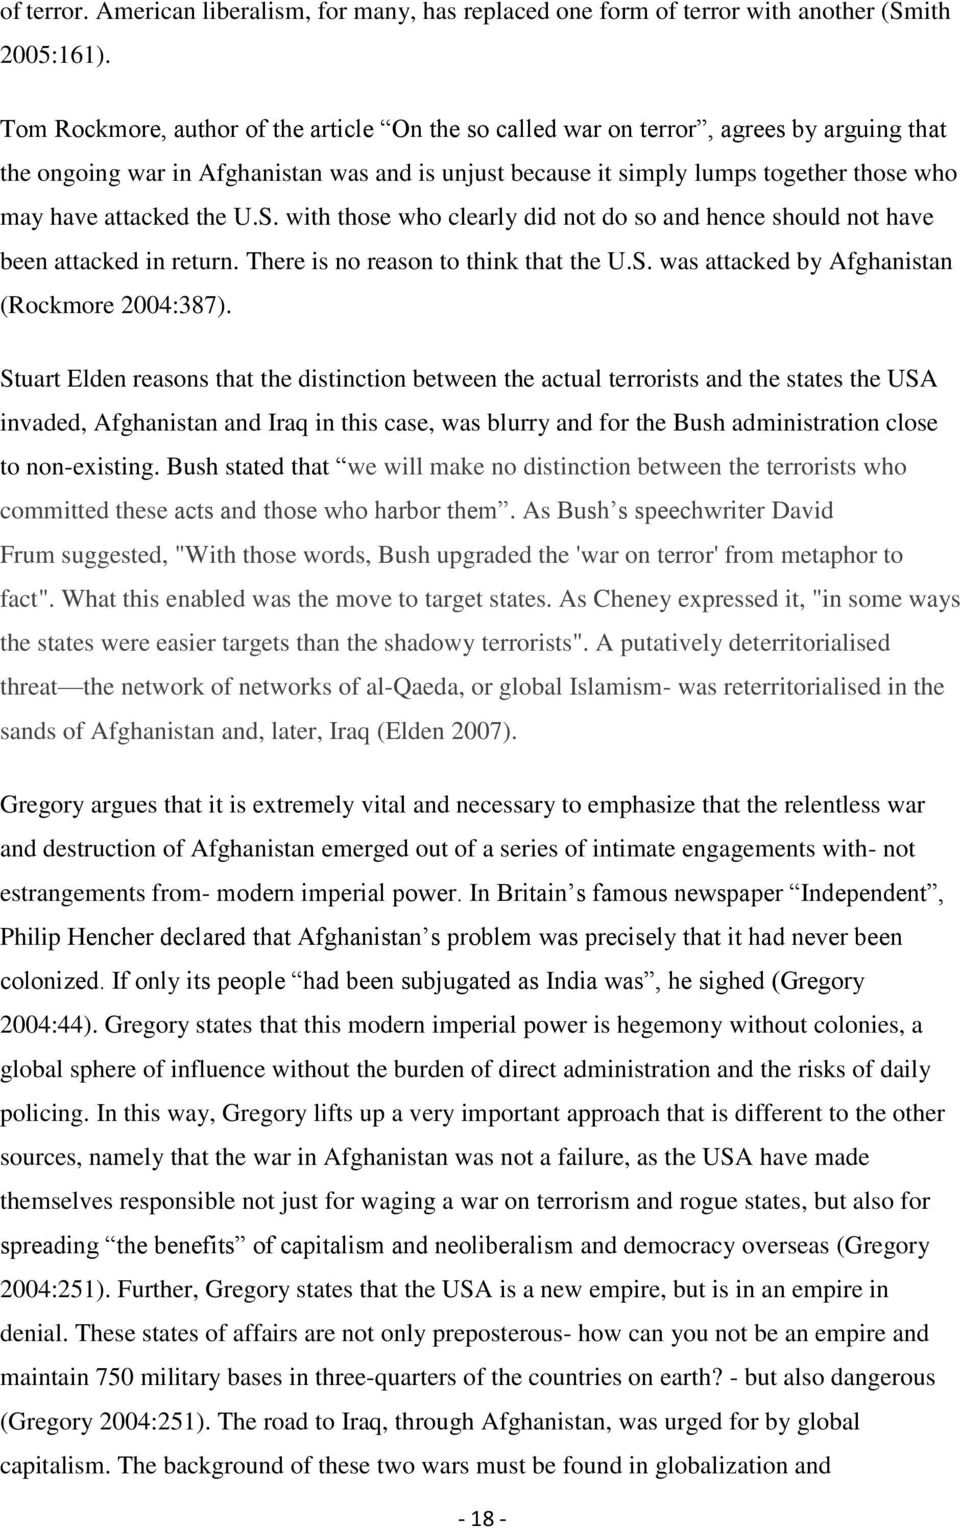 attacked the U.S. with those who clearly did not do so and hence should not have been attacked in return. There is no reason to think that the U.S. was attacked by Afghanistan (Rockmore 2004:387).